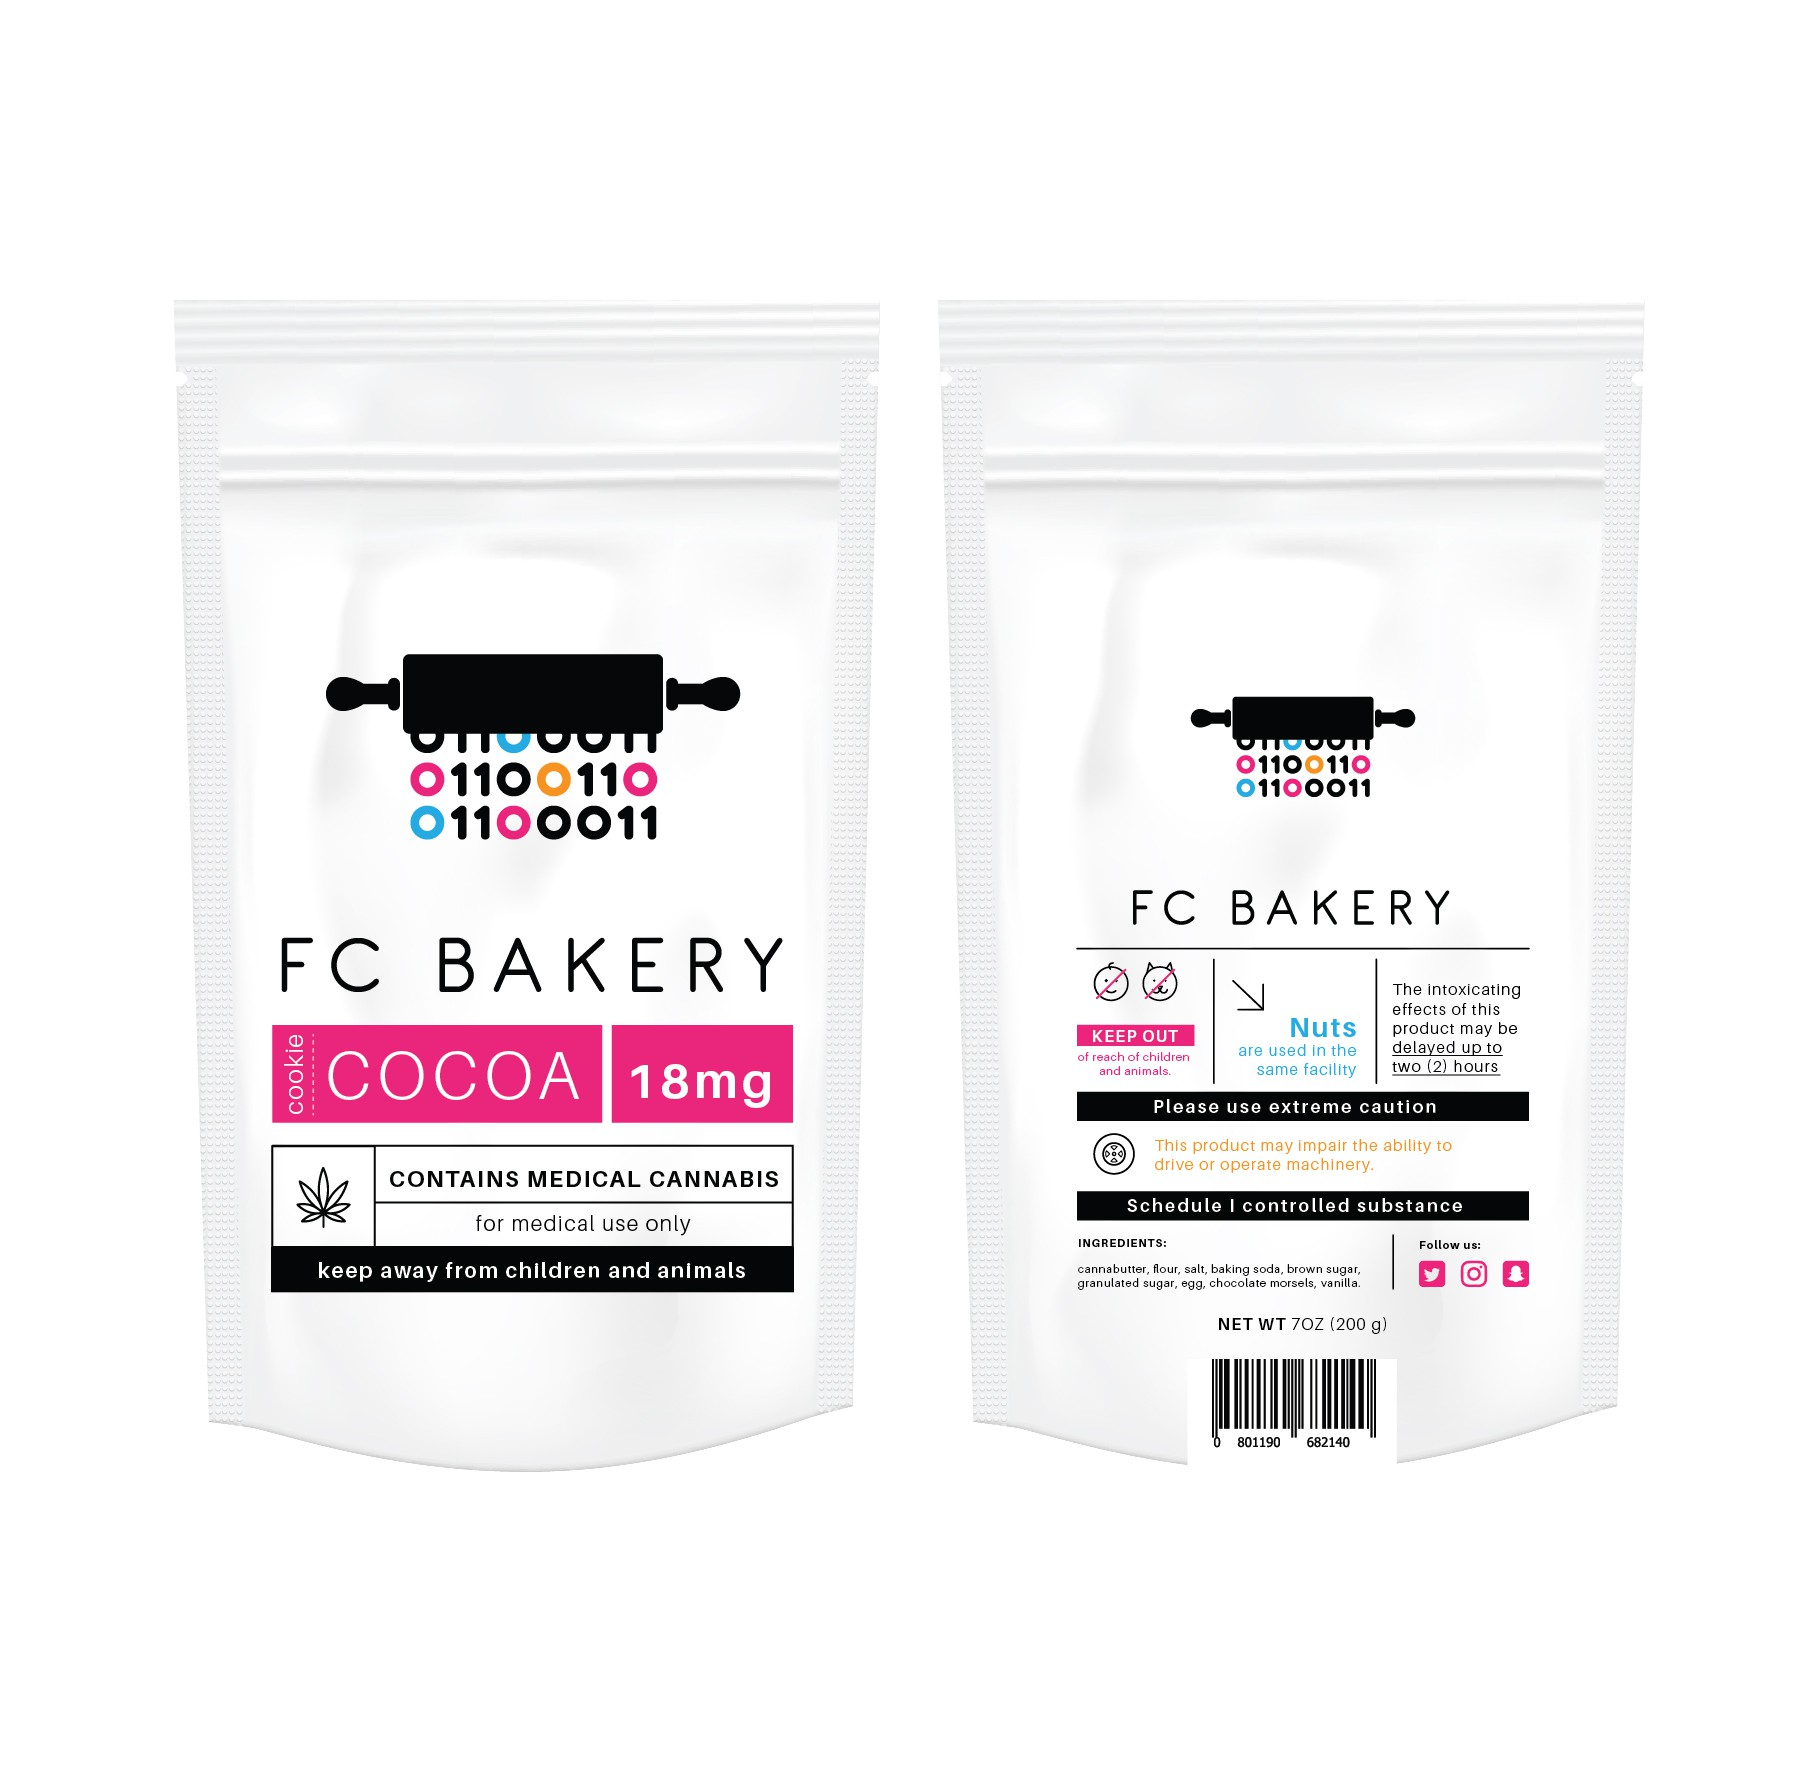 Create a professional food label for an innovative bakery.